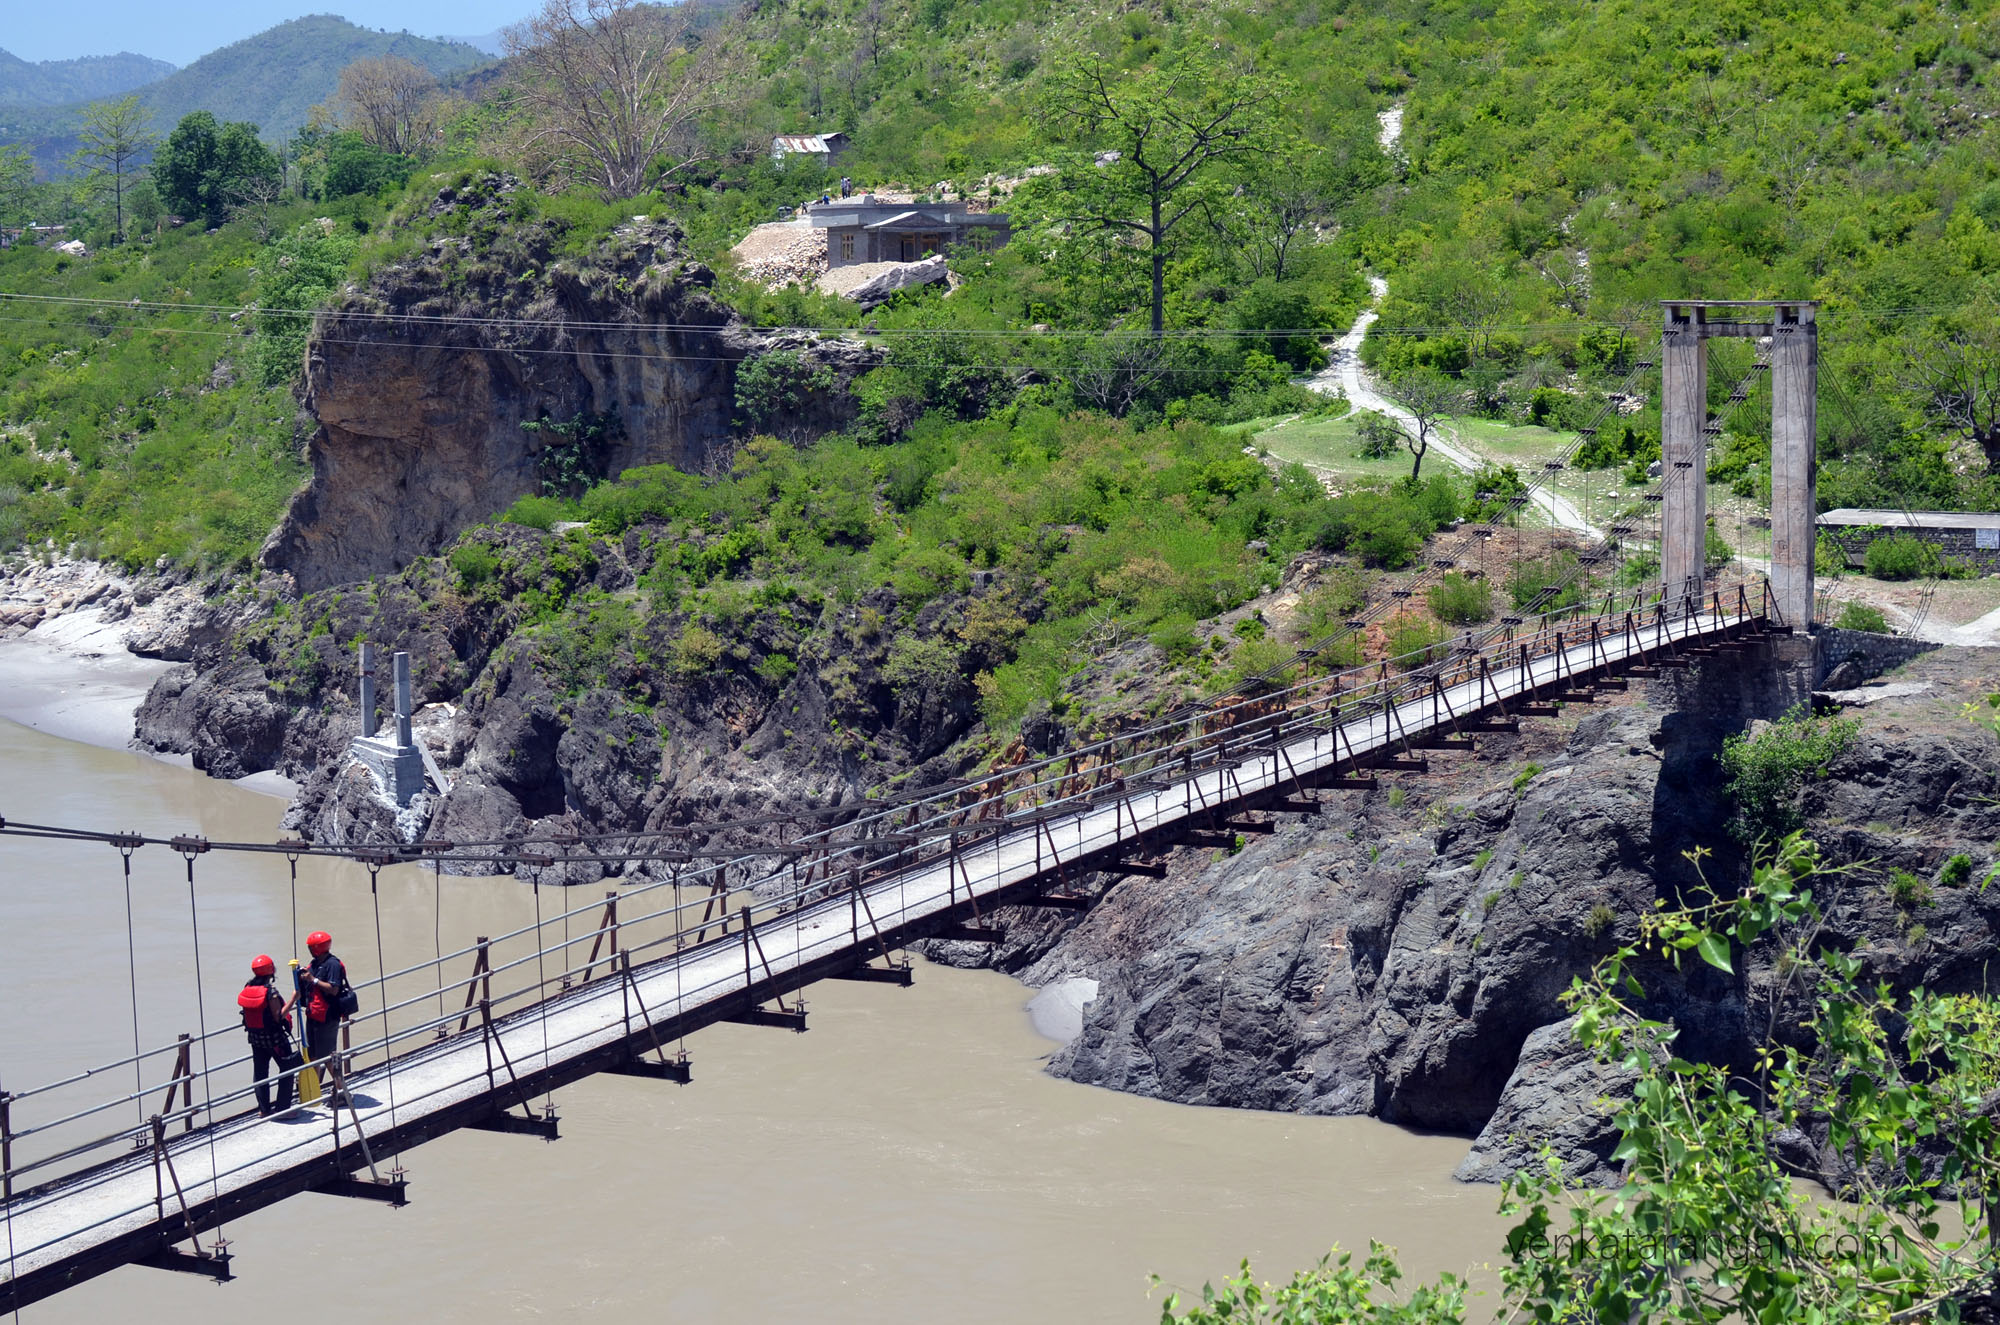 Bridge near Chaba Hydro Project over River Sutlej